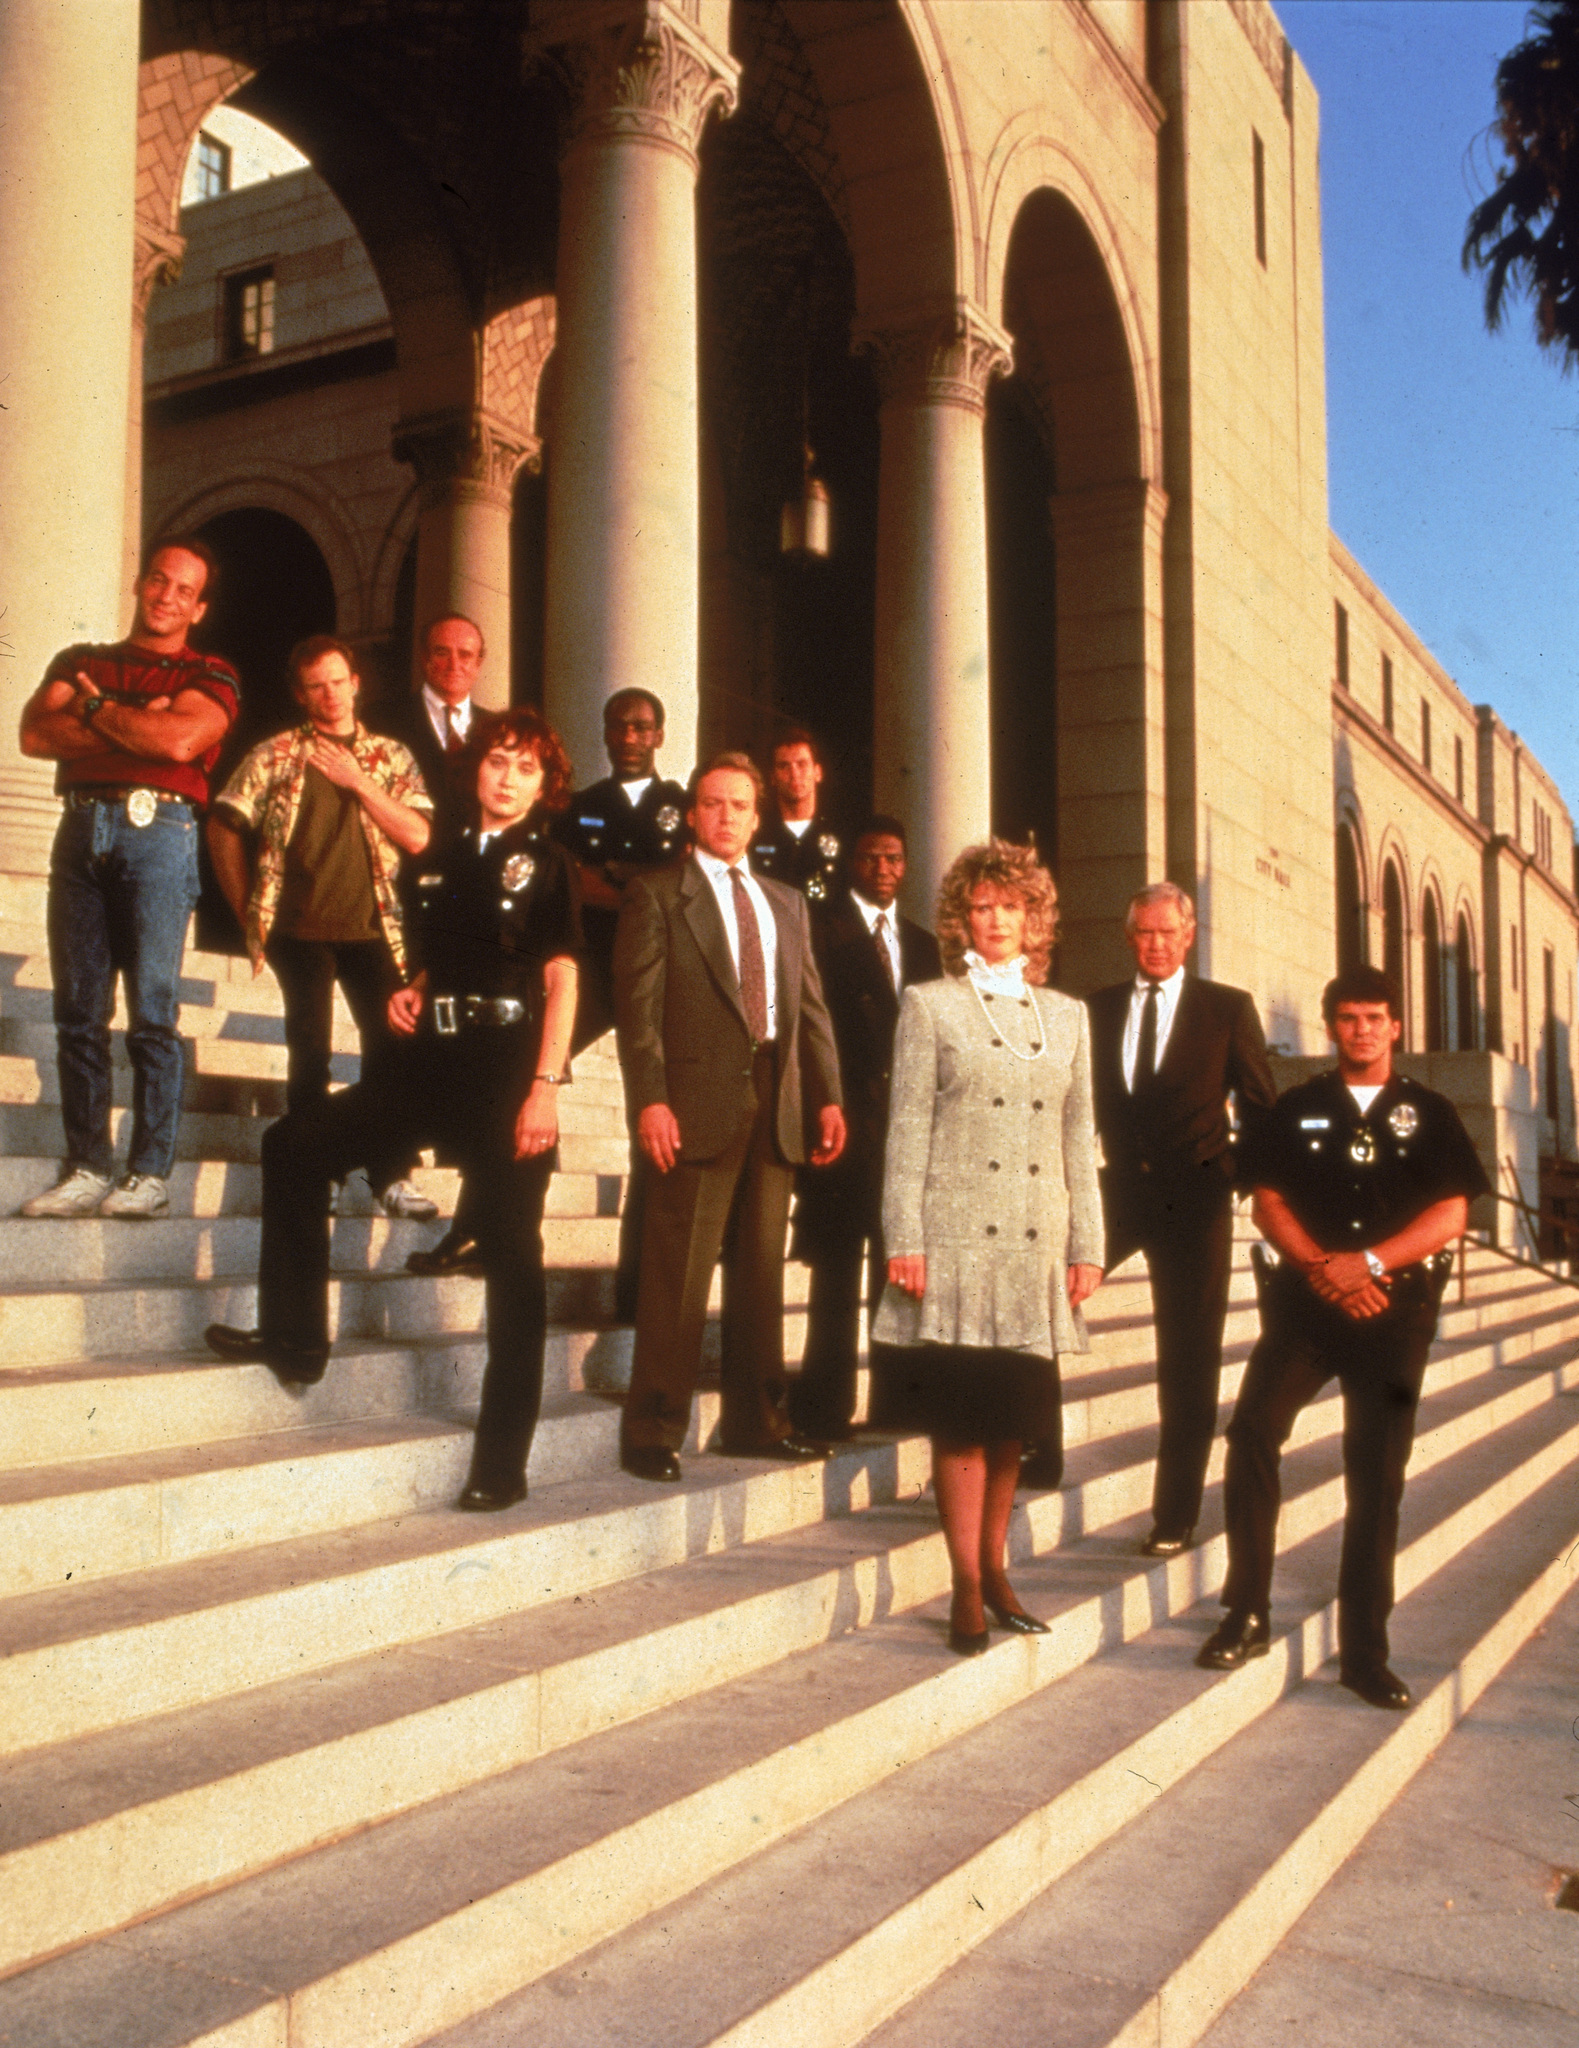 Ronny Cox, James McDaniel, Anne Bobby, Barbara Bosson, David Gianopoulos, Larry Joshua, Ron McLarty, Mick Murray, and Peter Onorati in Cop Rock (1990)